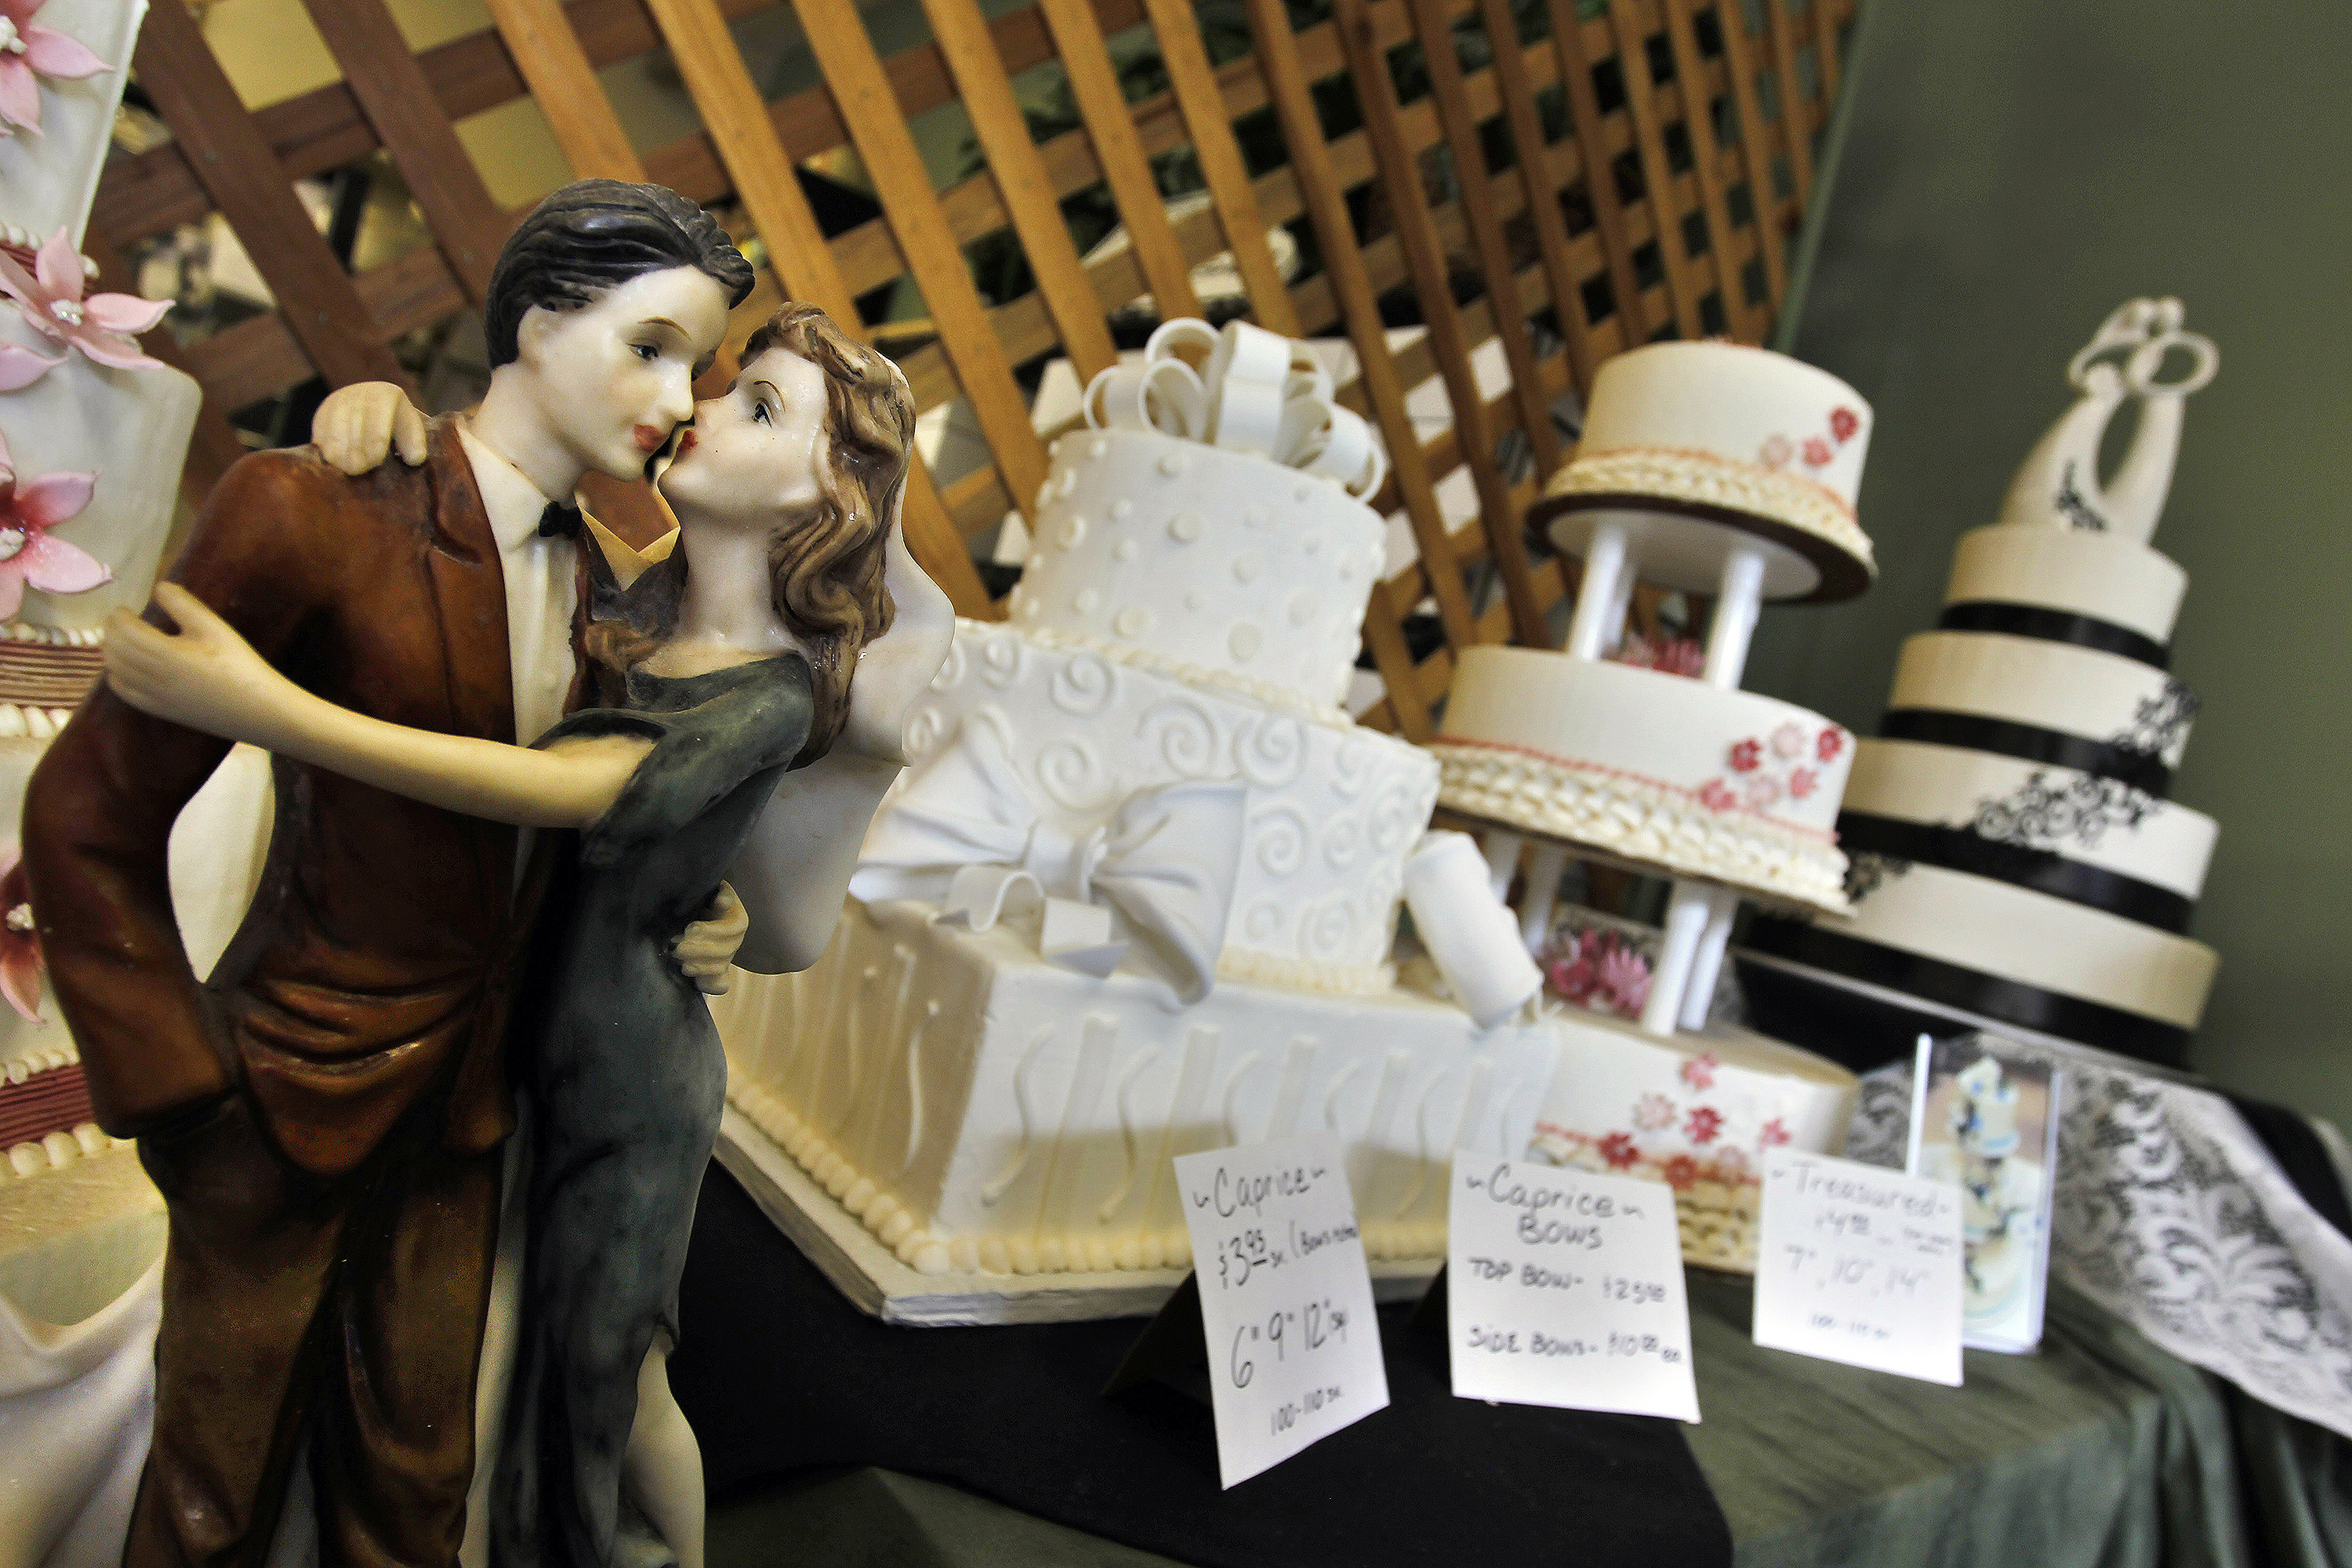 <p>Figurines are depicted in an embrace as part of the wedding cake display at Masterpiece Cakeshopin Denver, Thursday, June 6, 2013.</p>